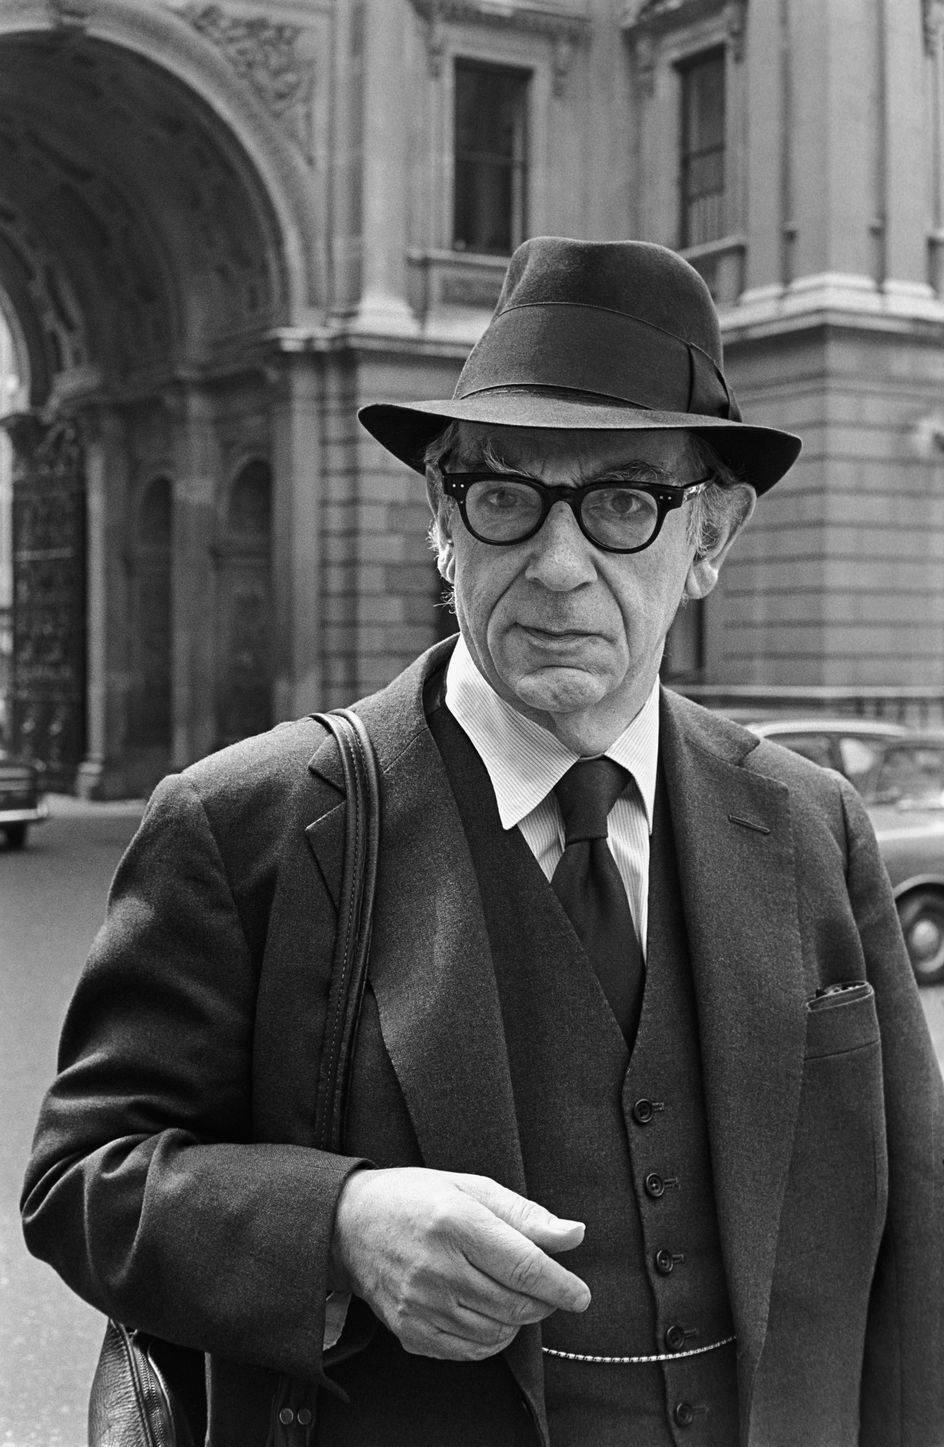 isaiah berlin essays This book assesses critically an important part of the work of a major historian of ideas isaiah berlin (1909–97) published many influential essays on thinkers of.